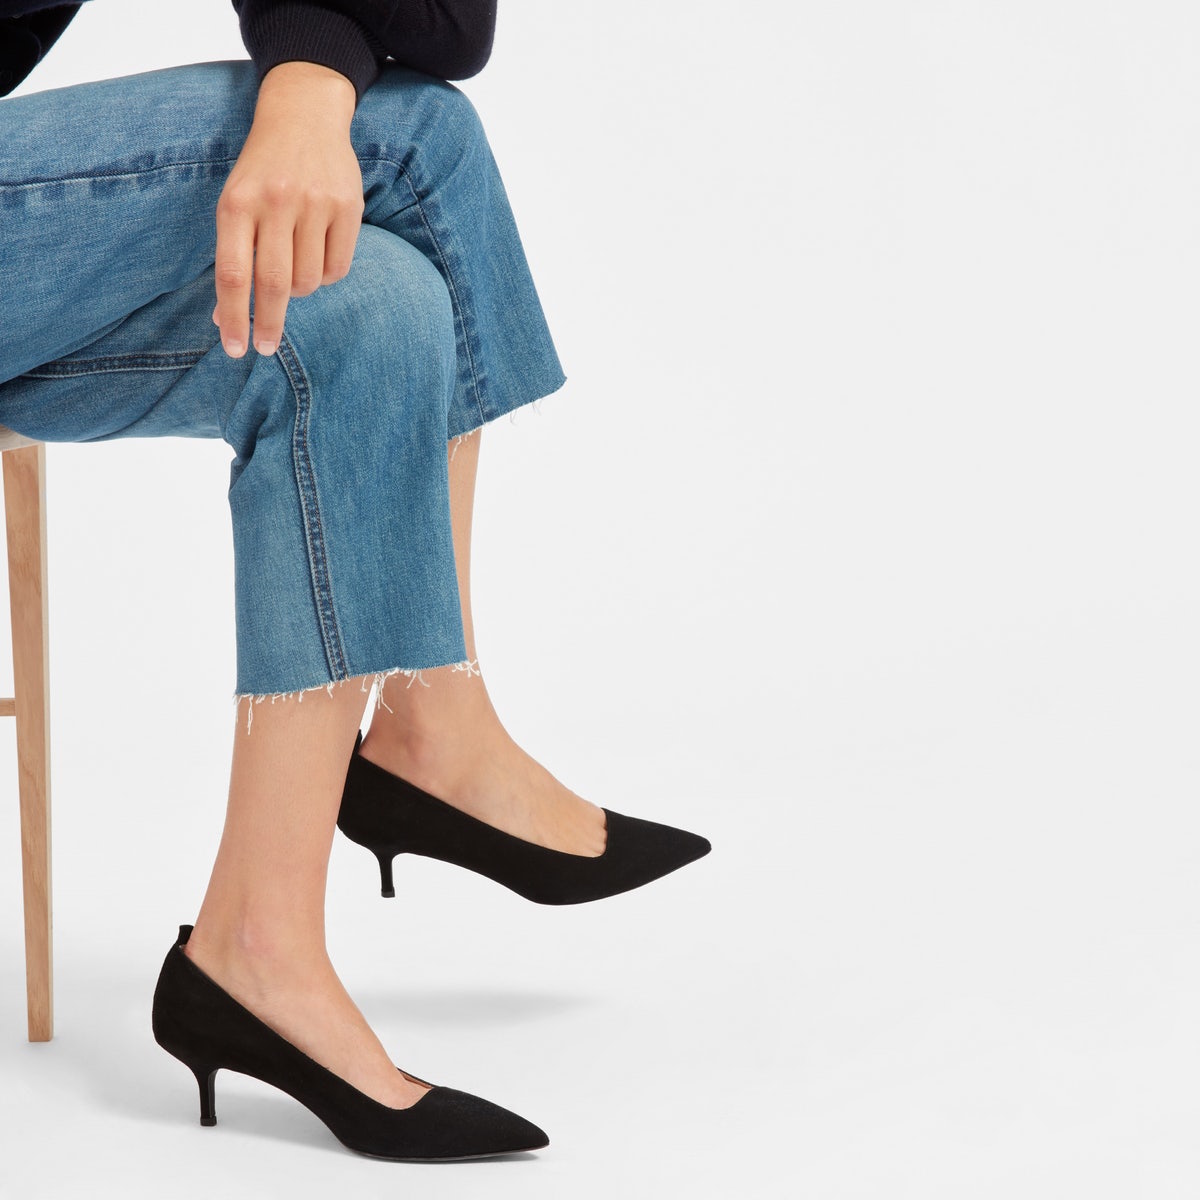 A Review of Everlane's New Kitten Heel, the Editor Heel